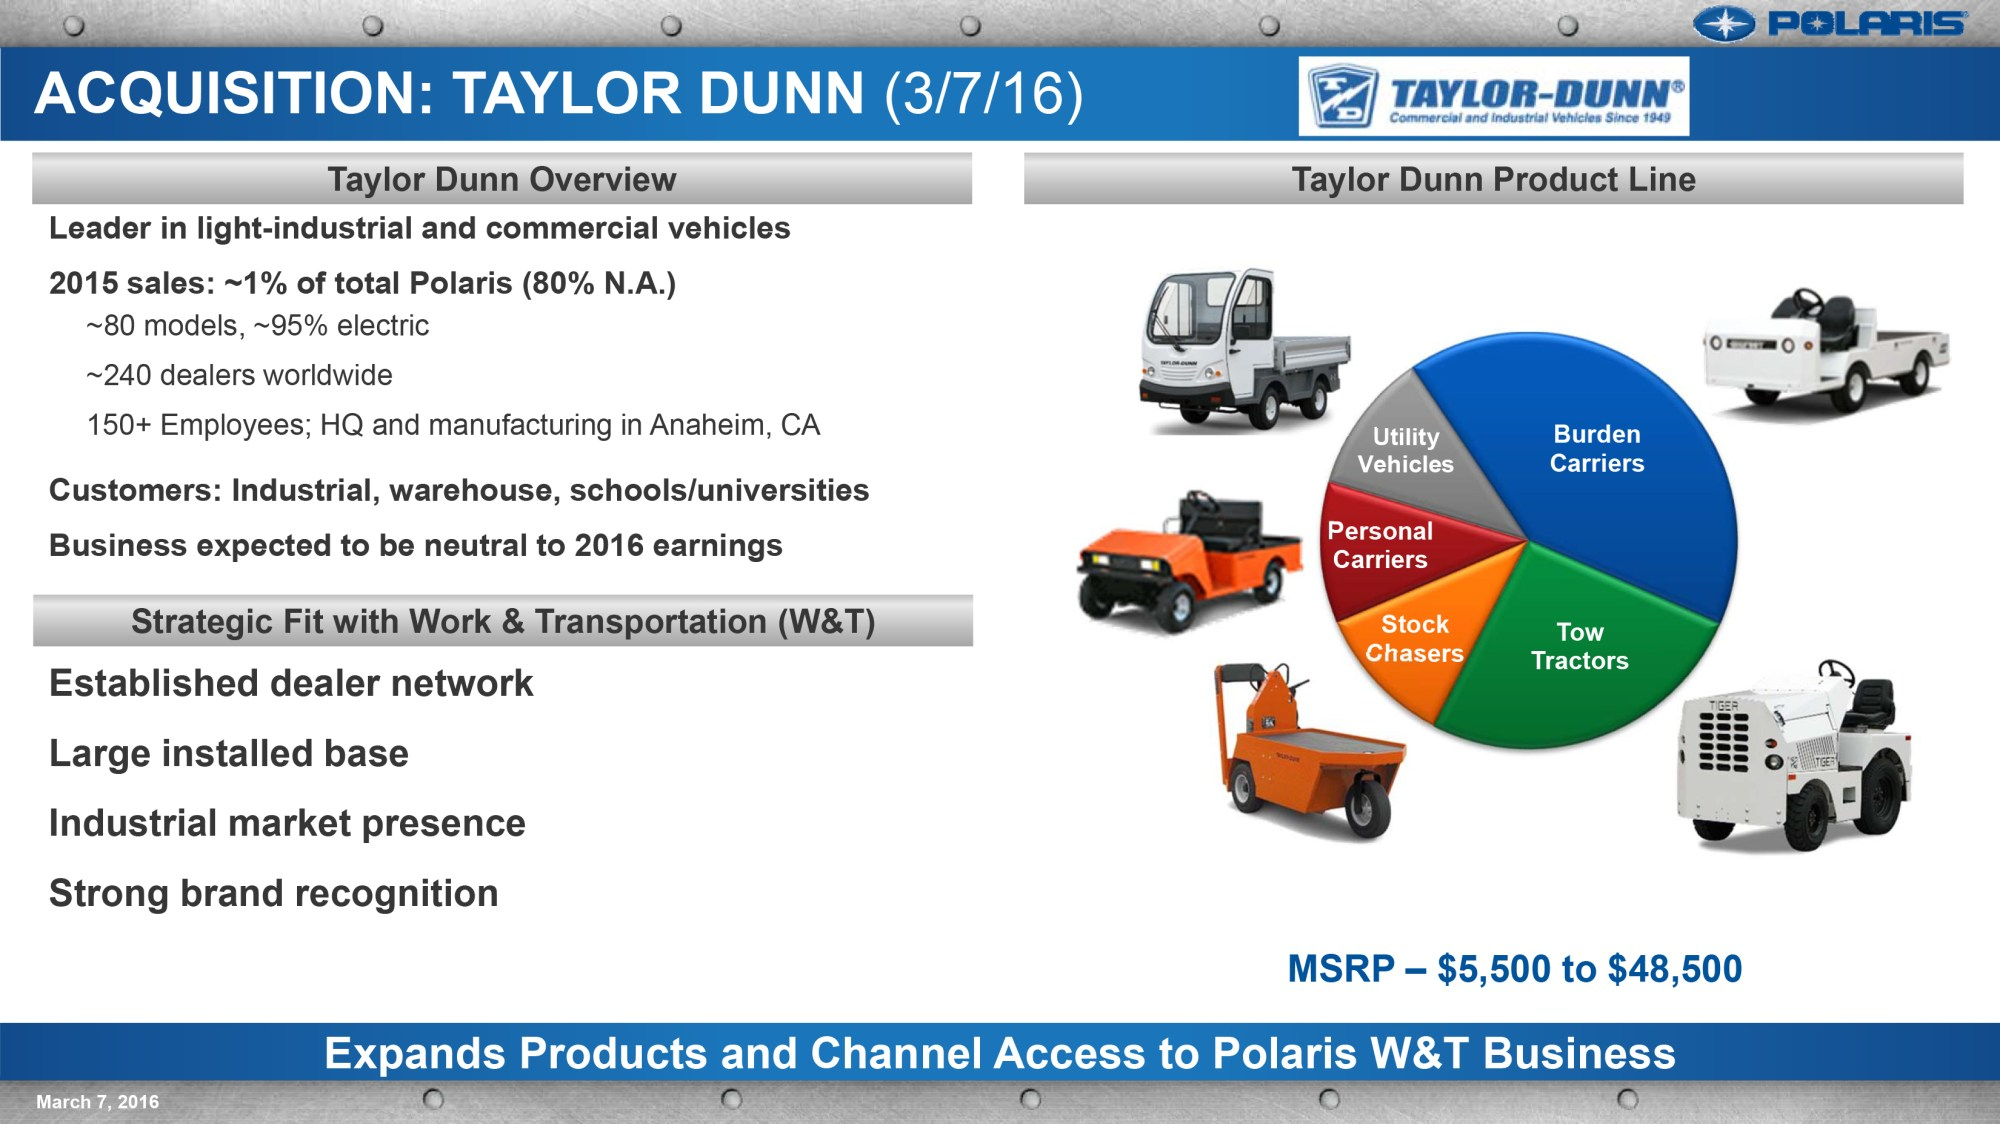 hight resolution of polaris acquires taylor dunn business wire 2497631 taylordunn 3 7 16 f 281 29 polaris acquires taylor dunn business wire taylor dunn wiring